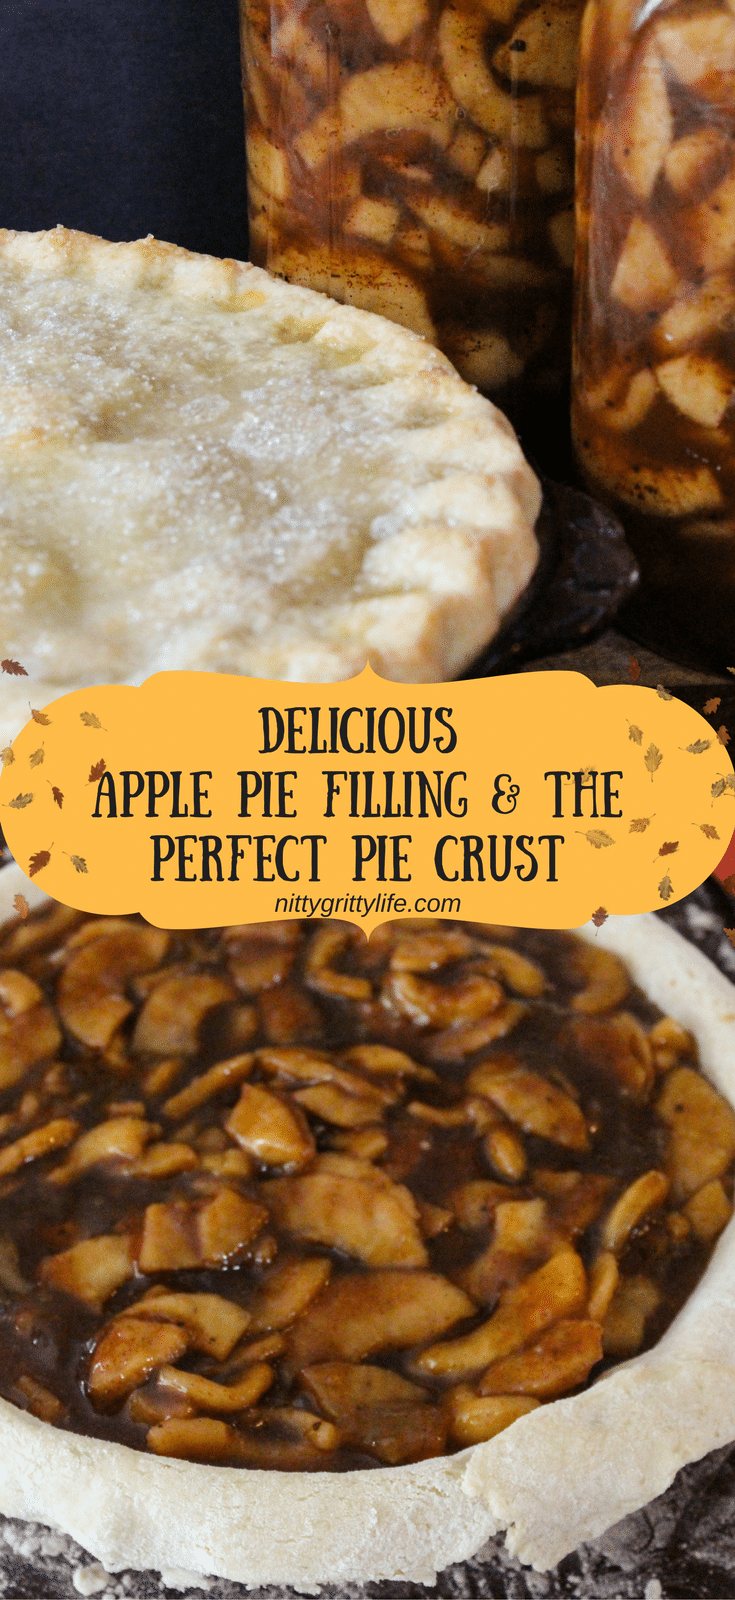 Preserve the bounty of autumn apples by canning this delicious apple pie filling recipe. Also make the perfect pastry crust for a mouthwatering pie!